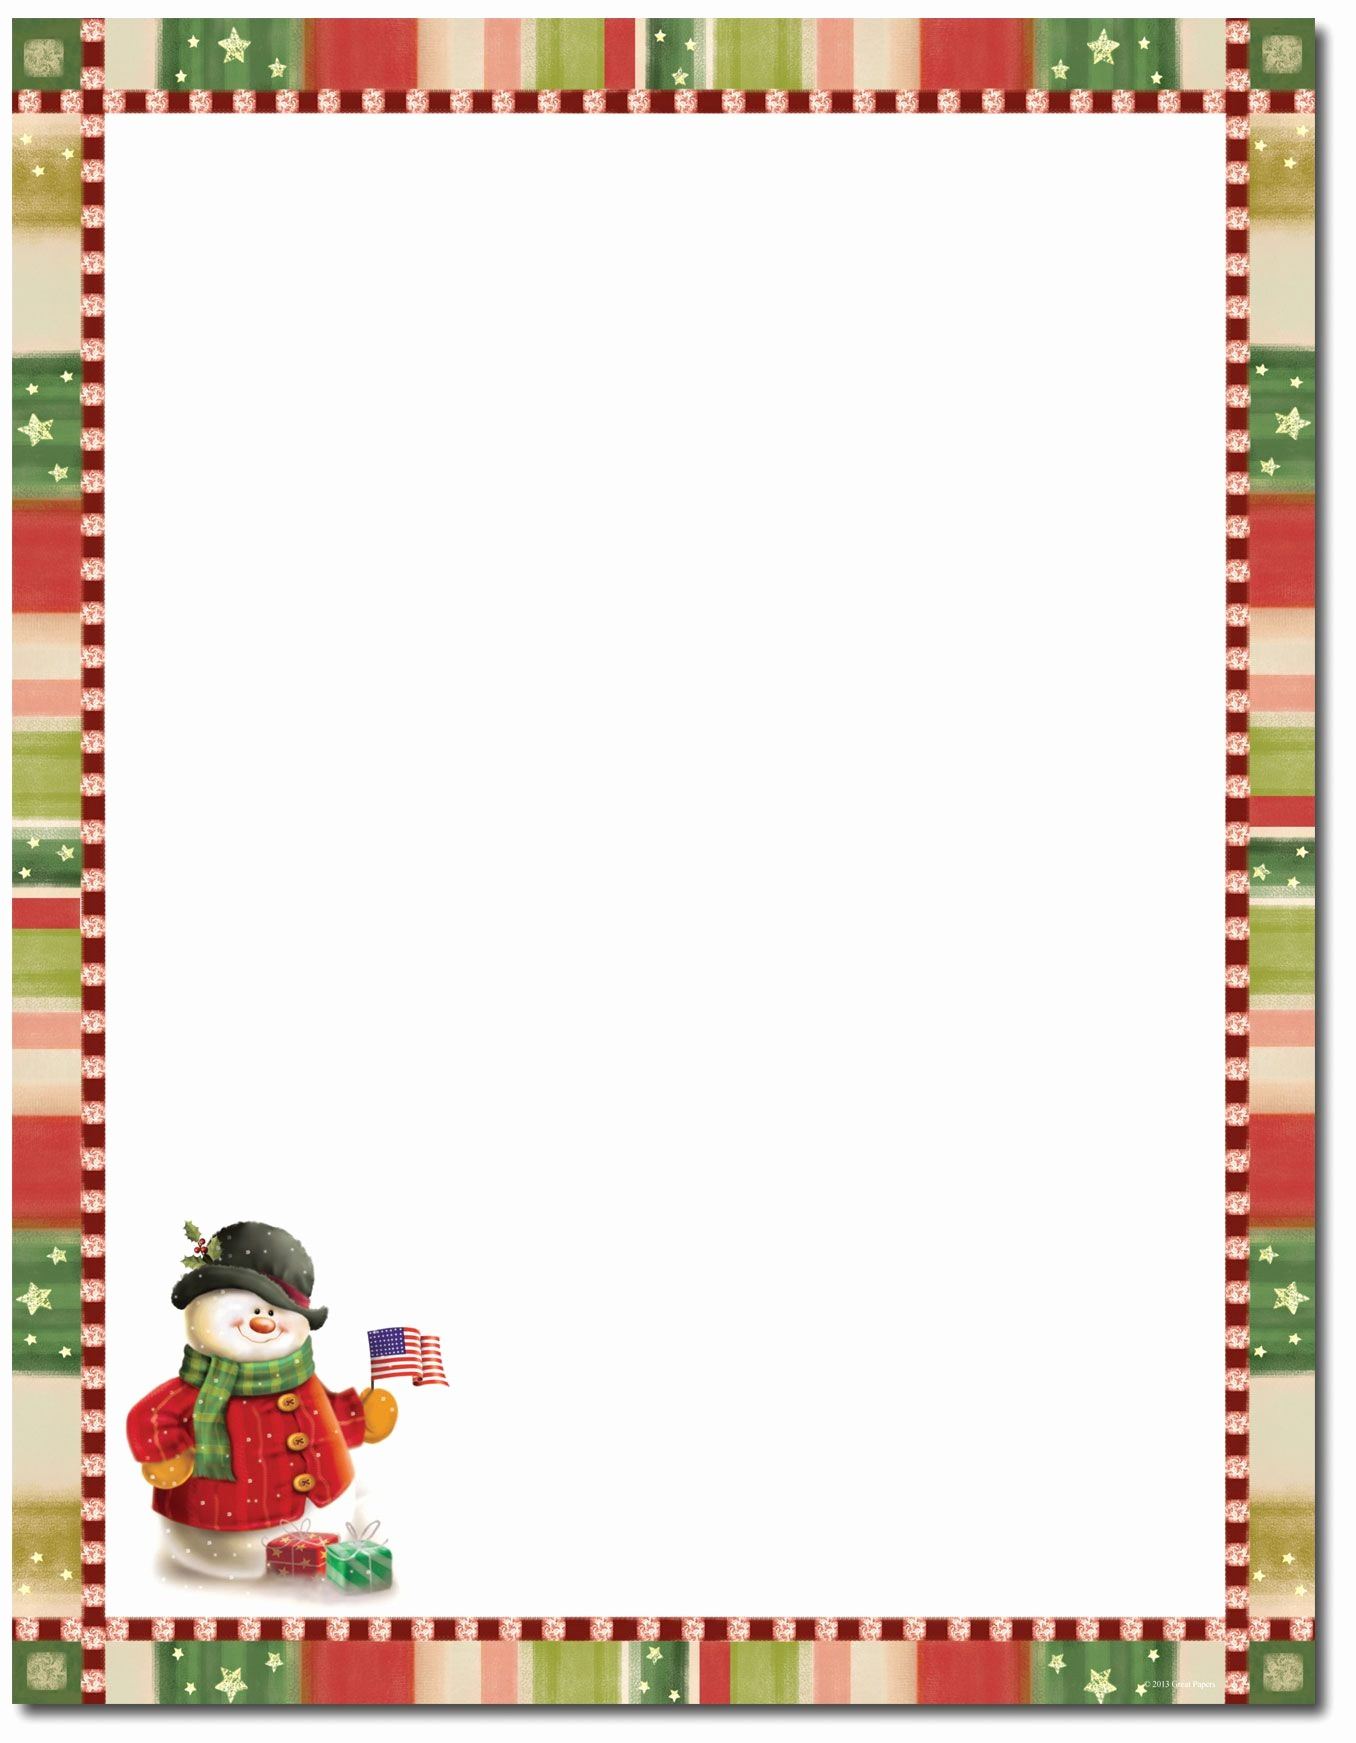 022 Stationary Templates For Word Christmas Stationery Template - Free Printable Christmas Stationary